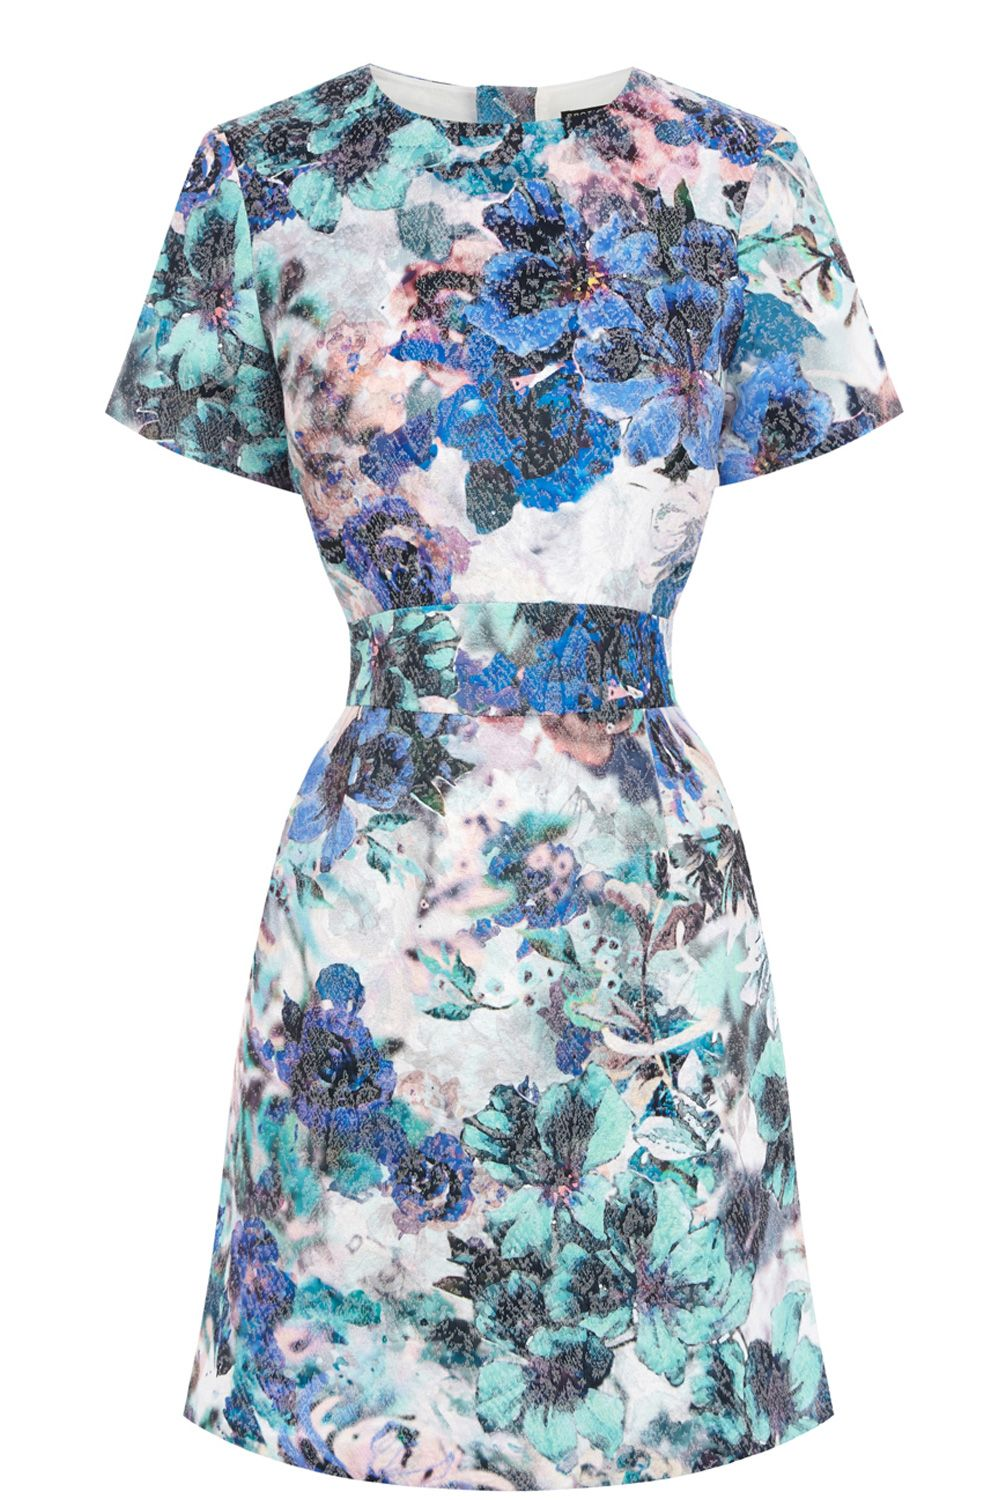 Printed jacquard shift dress